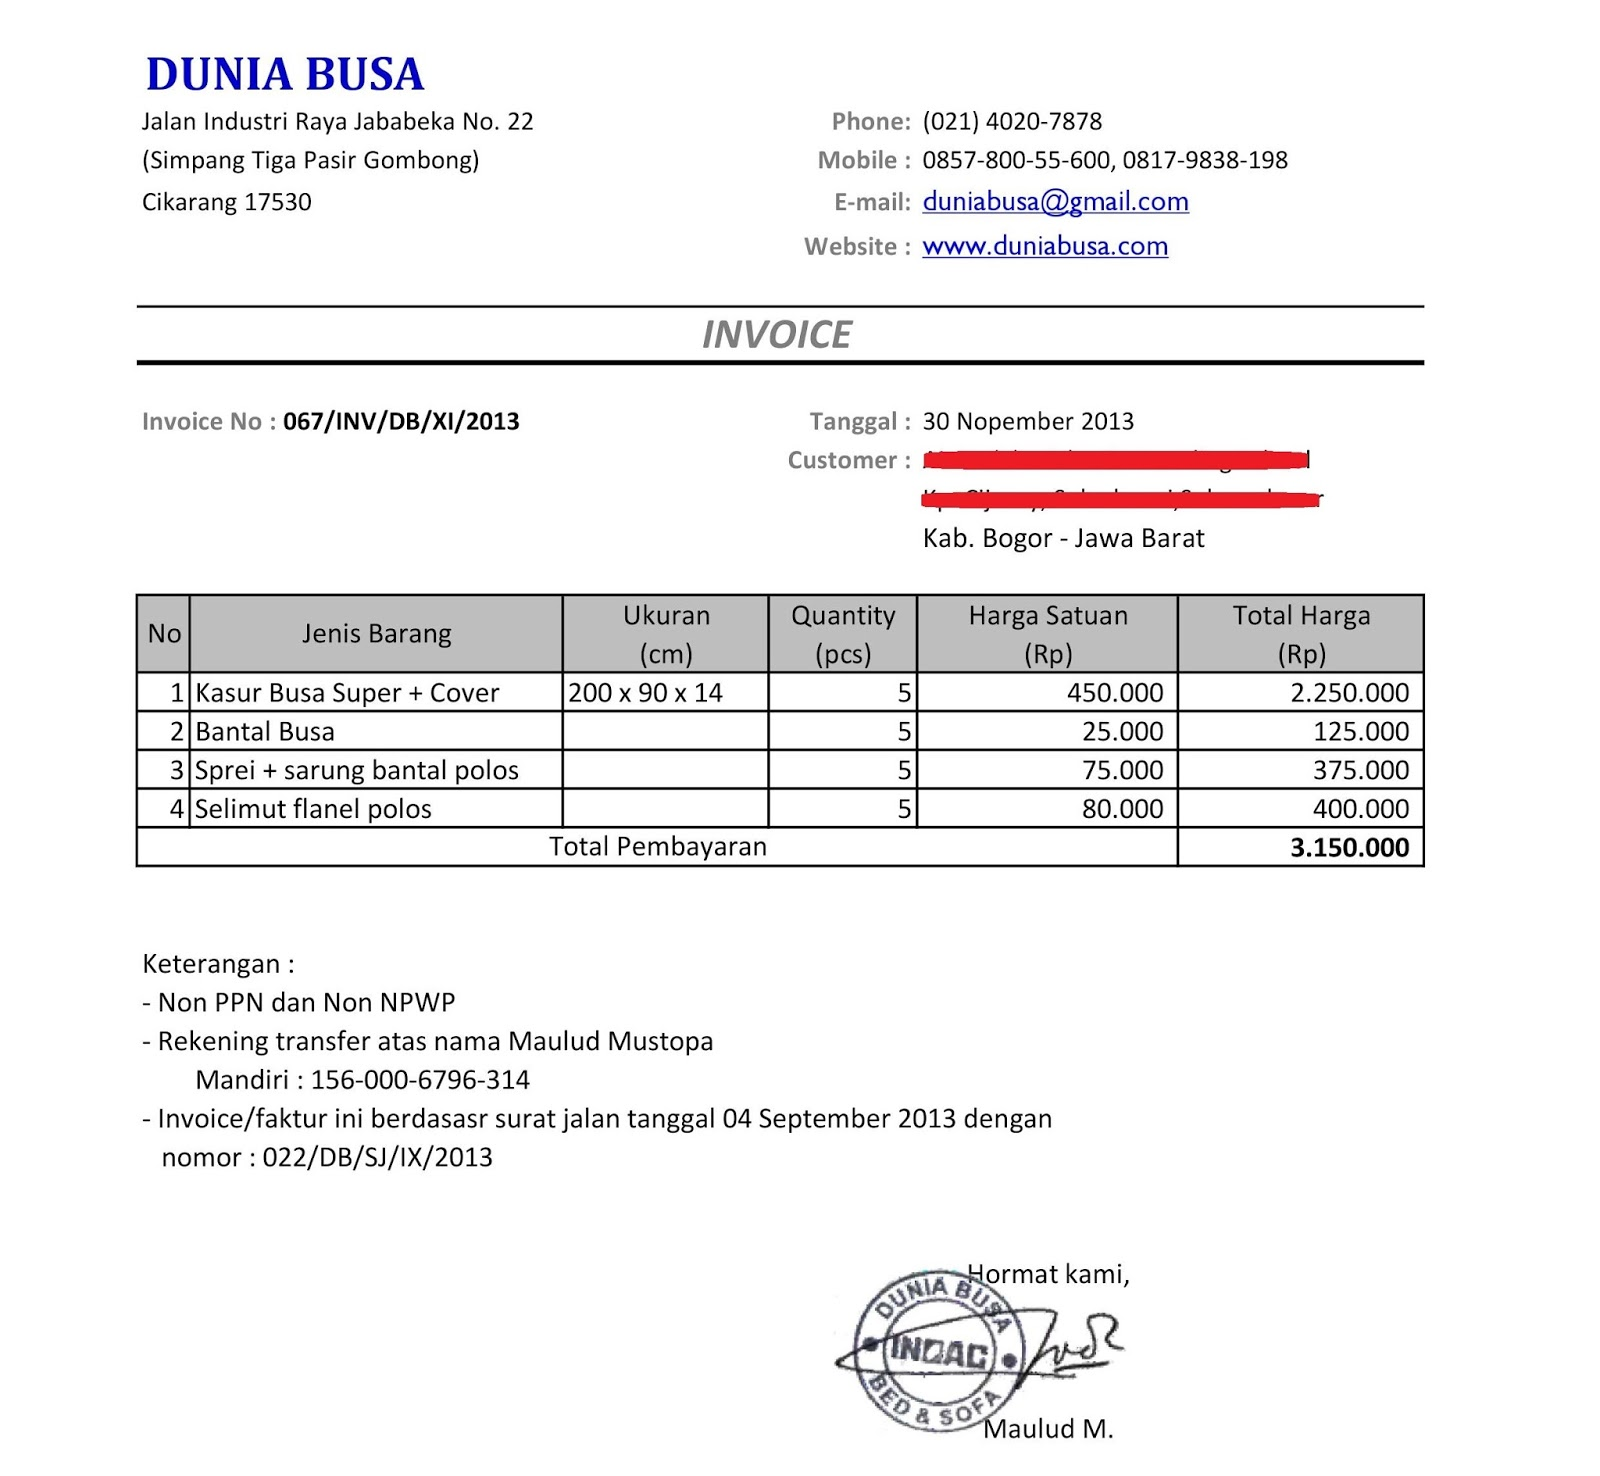 Usdgus  Unusual Free Invoice Online  Create Invoice Online  Invoice Template  With Foxy Contoh Format Invoice Atau Surat Tagihan  Brankas Arsip  Free Invoice Online With Easy On The Eye Create Online Invoice Also Ford F  Invoice Price In Addition Invoice Templaye And Excel Invoices As Well As Invoice Template Indesign Additionally Legal Invoice From Sklepco With Usdgus  Foxy Free Invoice Online  Create Invoice Online  Invoice Template  With Easy On The Eye Contoh Format Invoice Atau Surat Tagihan  Brankas Arsip  Free Invoice Online And Unusual Create Online Invoice Also Ford F  Invoice Price In Addition Invoice Templaye From Sklepco